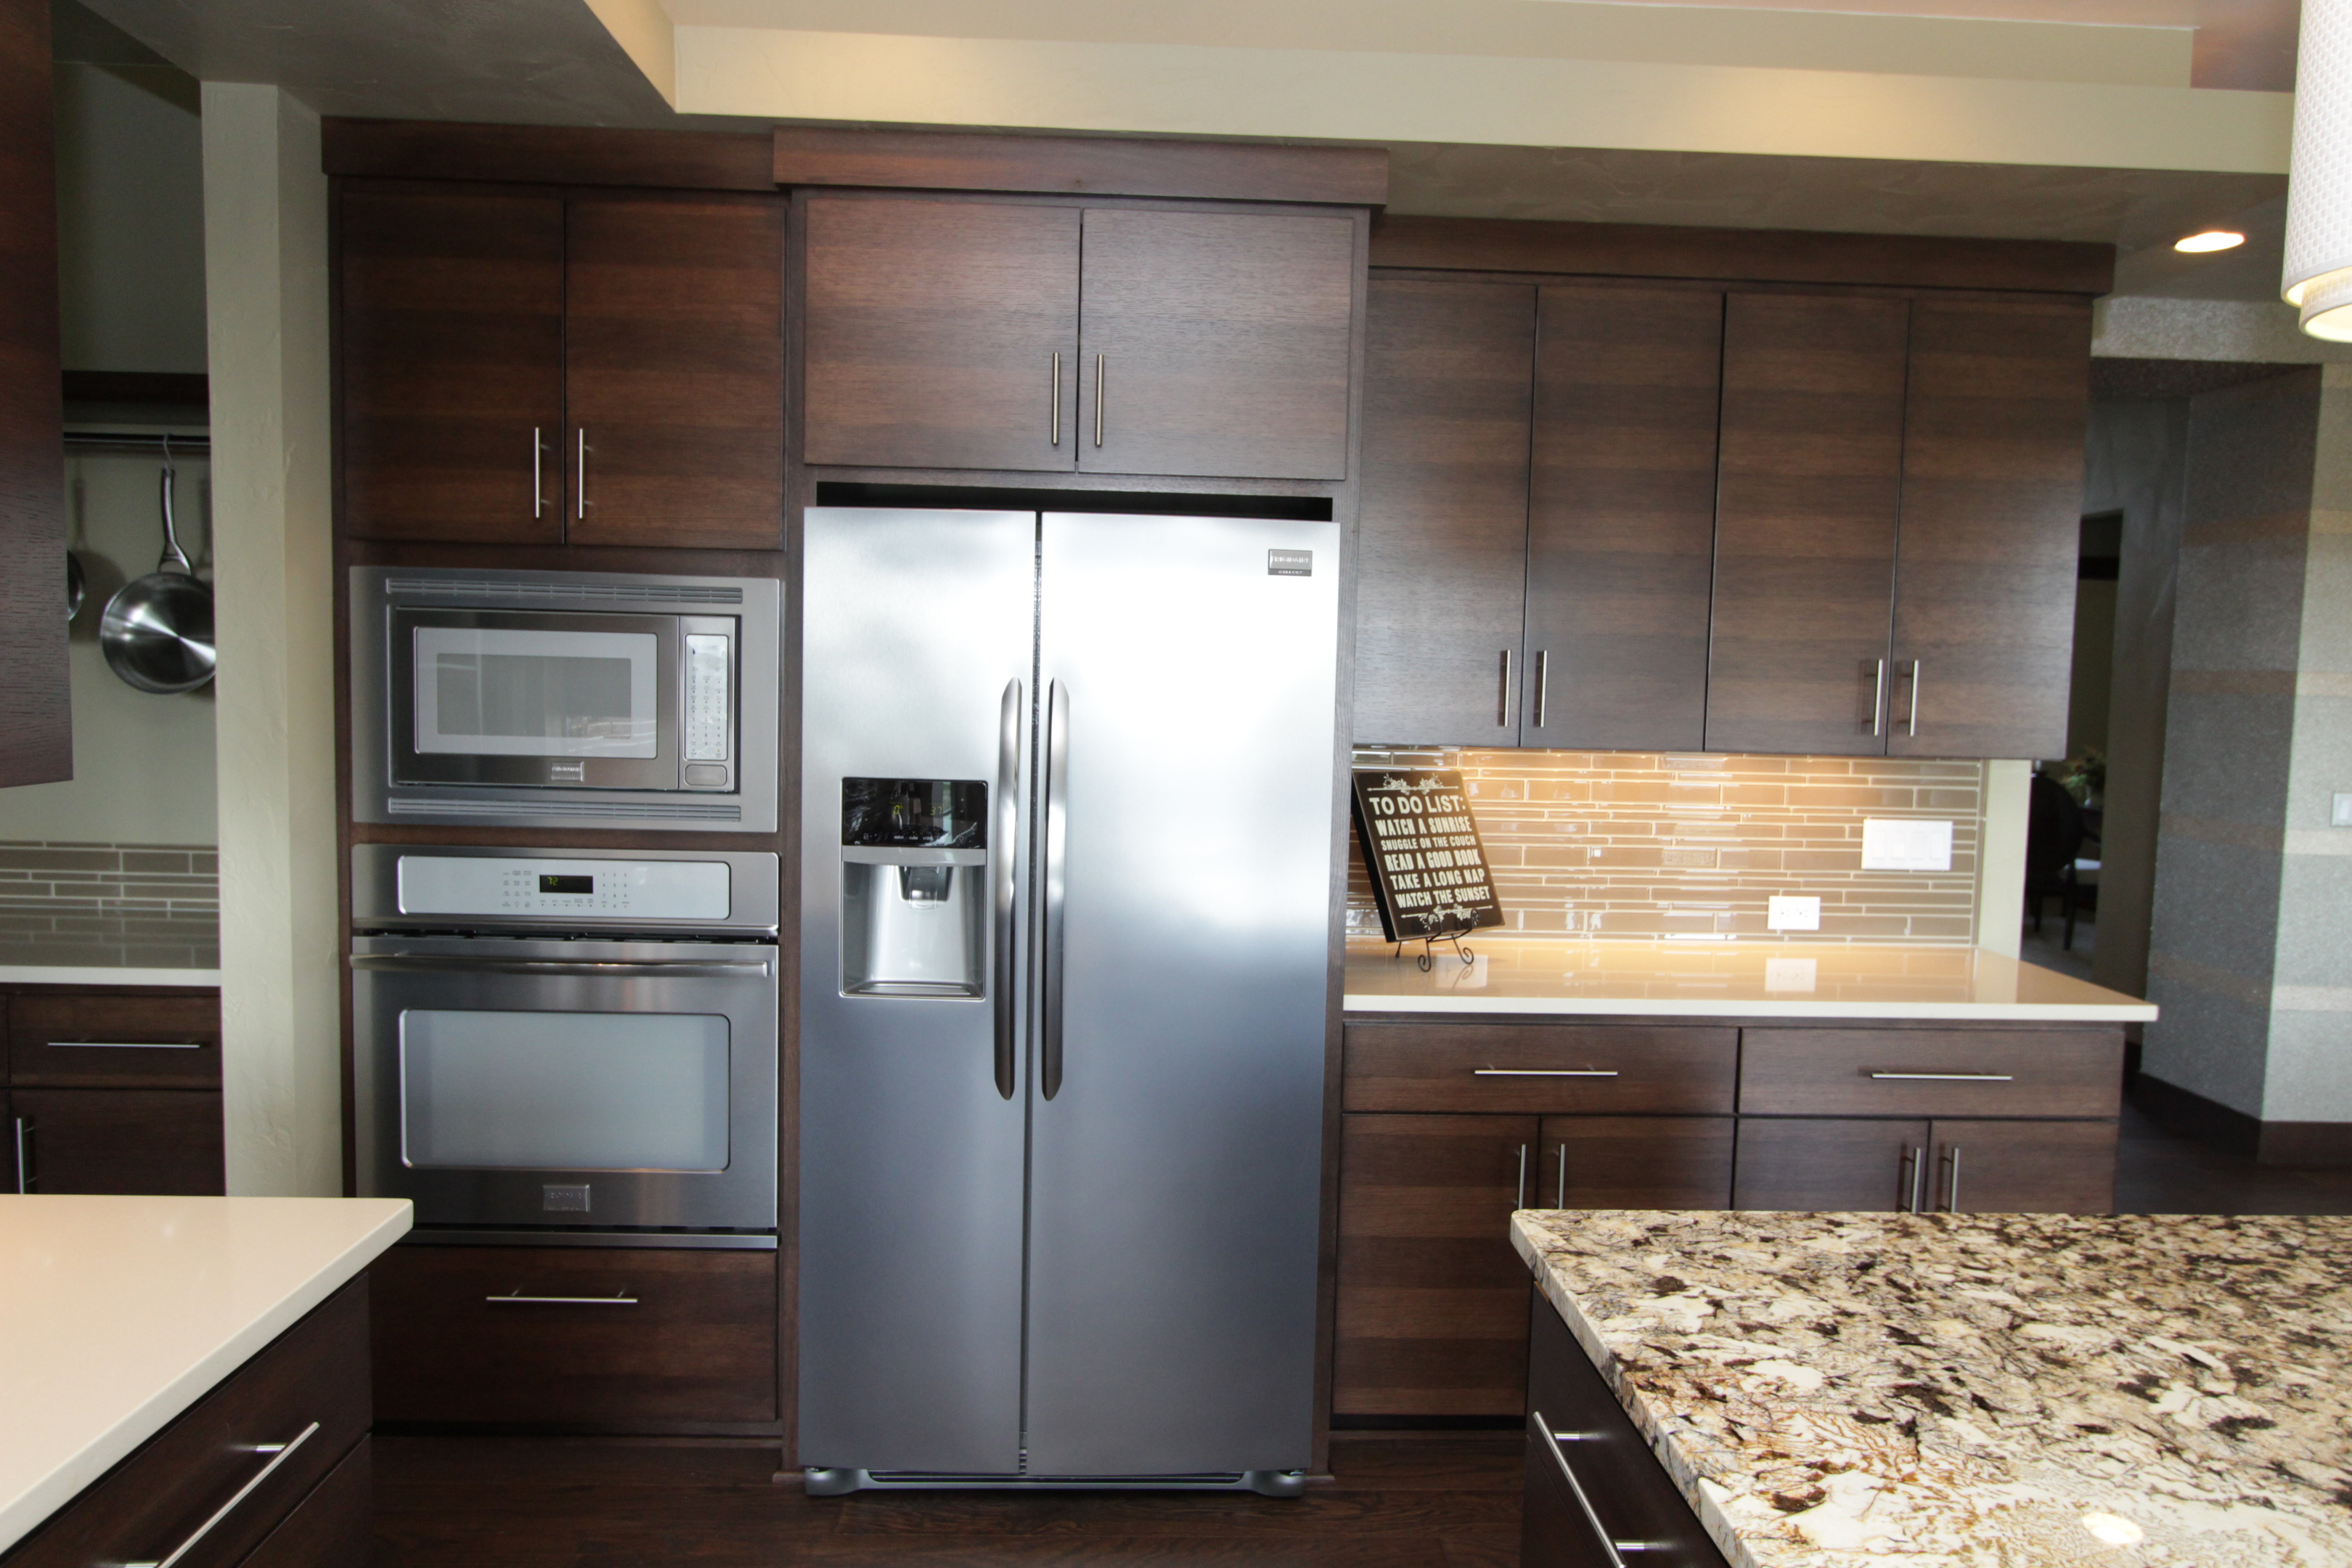 Double oven cabinet model search jrp24bd1bb tall cabinet for Affordable custom kitchen cabinets